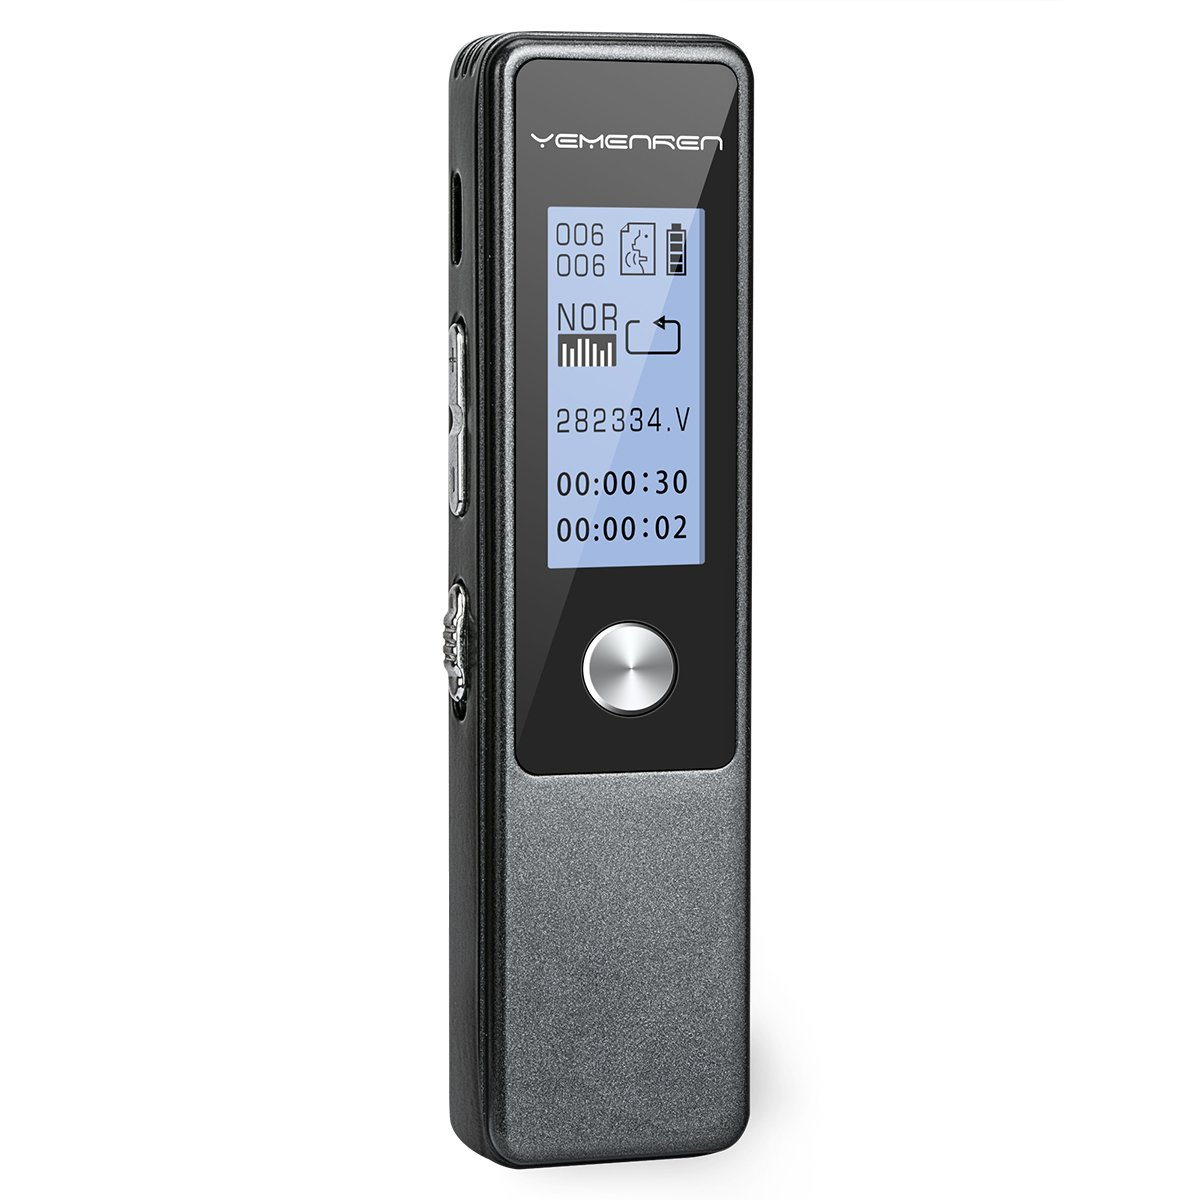 Digital Voice Recorder by Yemenren, 8GB 3072Kbps Sound Audio Recorder Dictaphone for Meetings Lectures, USB, Voice Activated, Double Microphone, Metal Casing